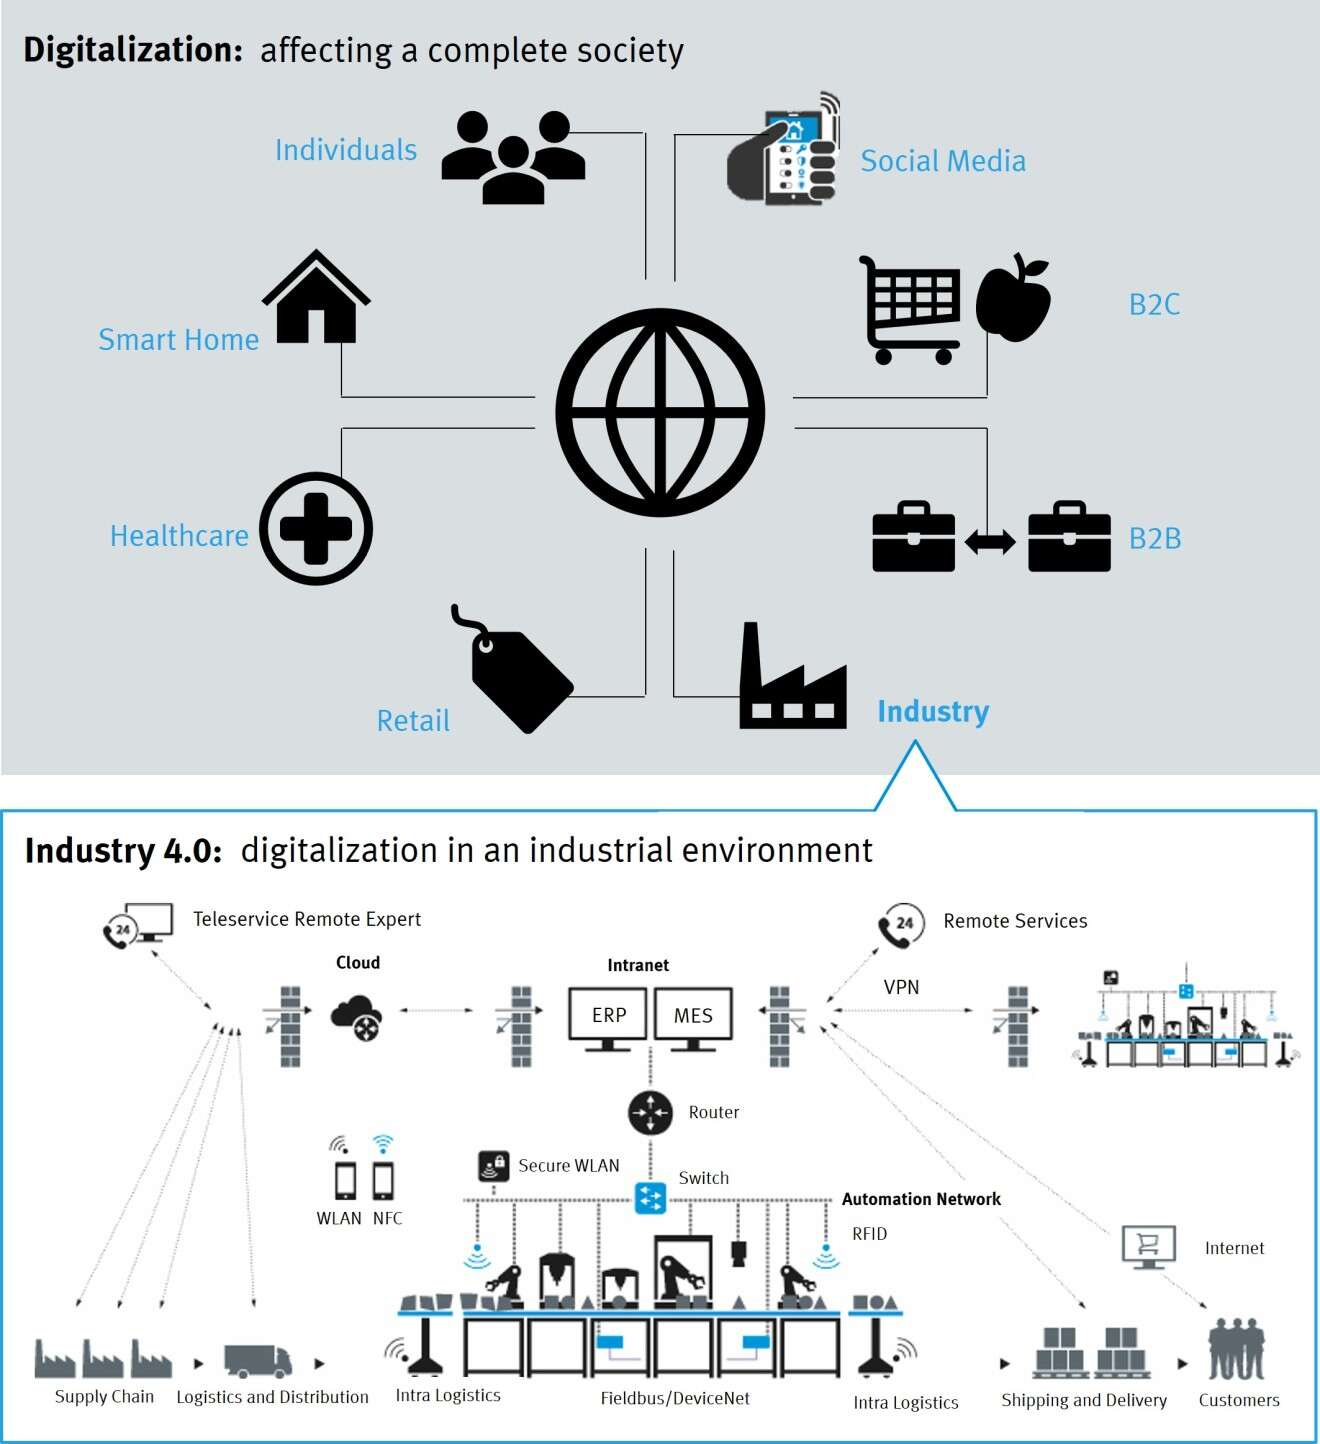 Core elements of digitalisation and Industry 4.0